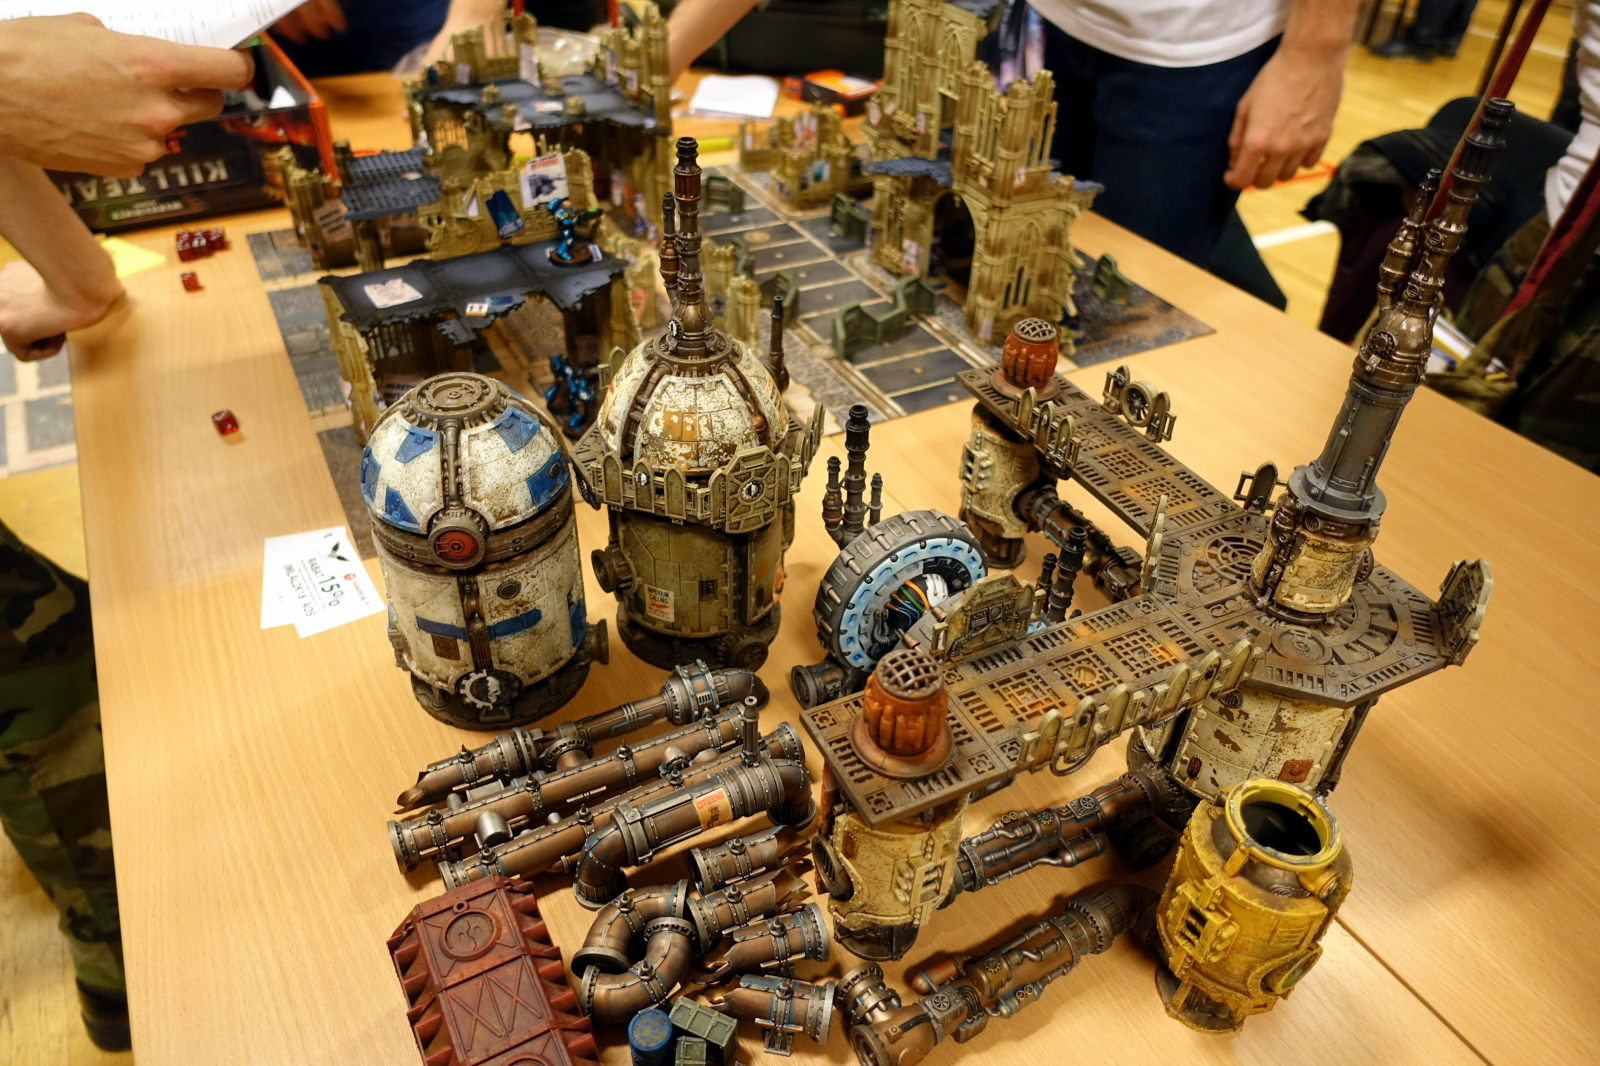 Some steampunkish scenography for wargaming.